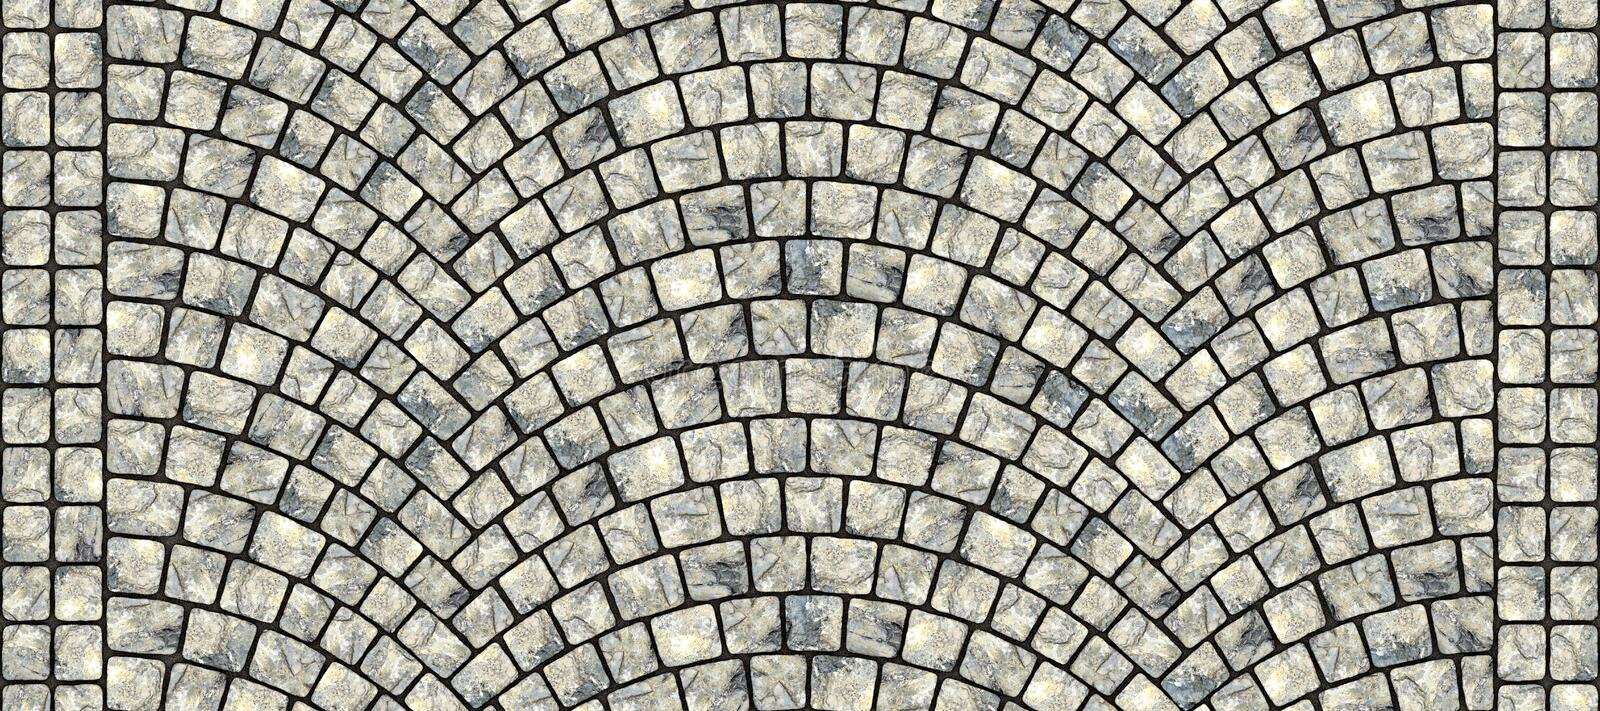 Road curved cobblestone texture 103. Cobblestone arched pavement road with edge courses at the sidewalk. Seamless tileable repeating 3D rendering texture vector illustration